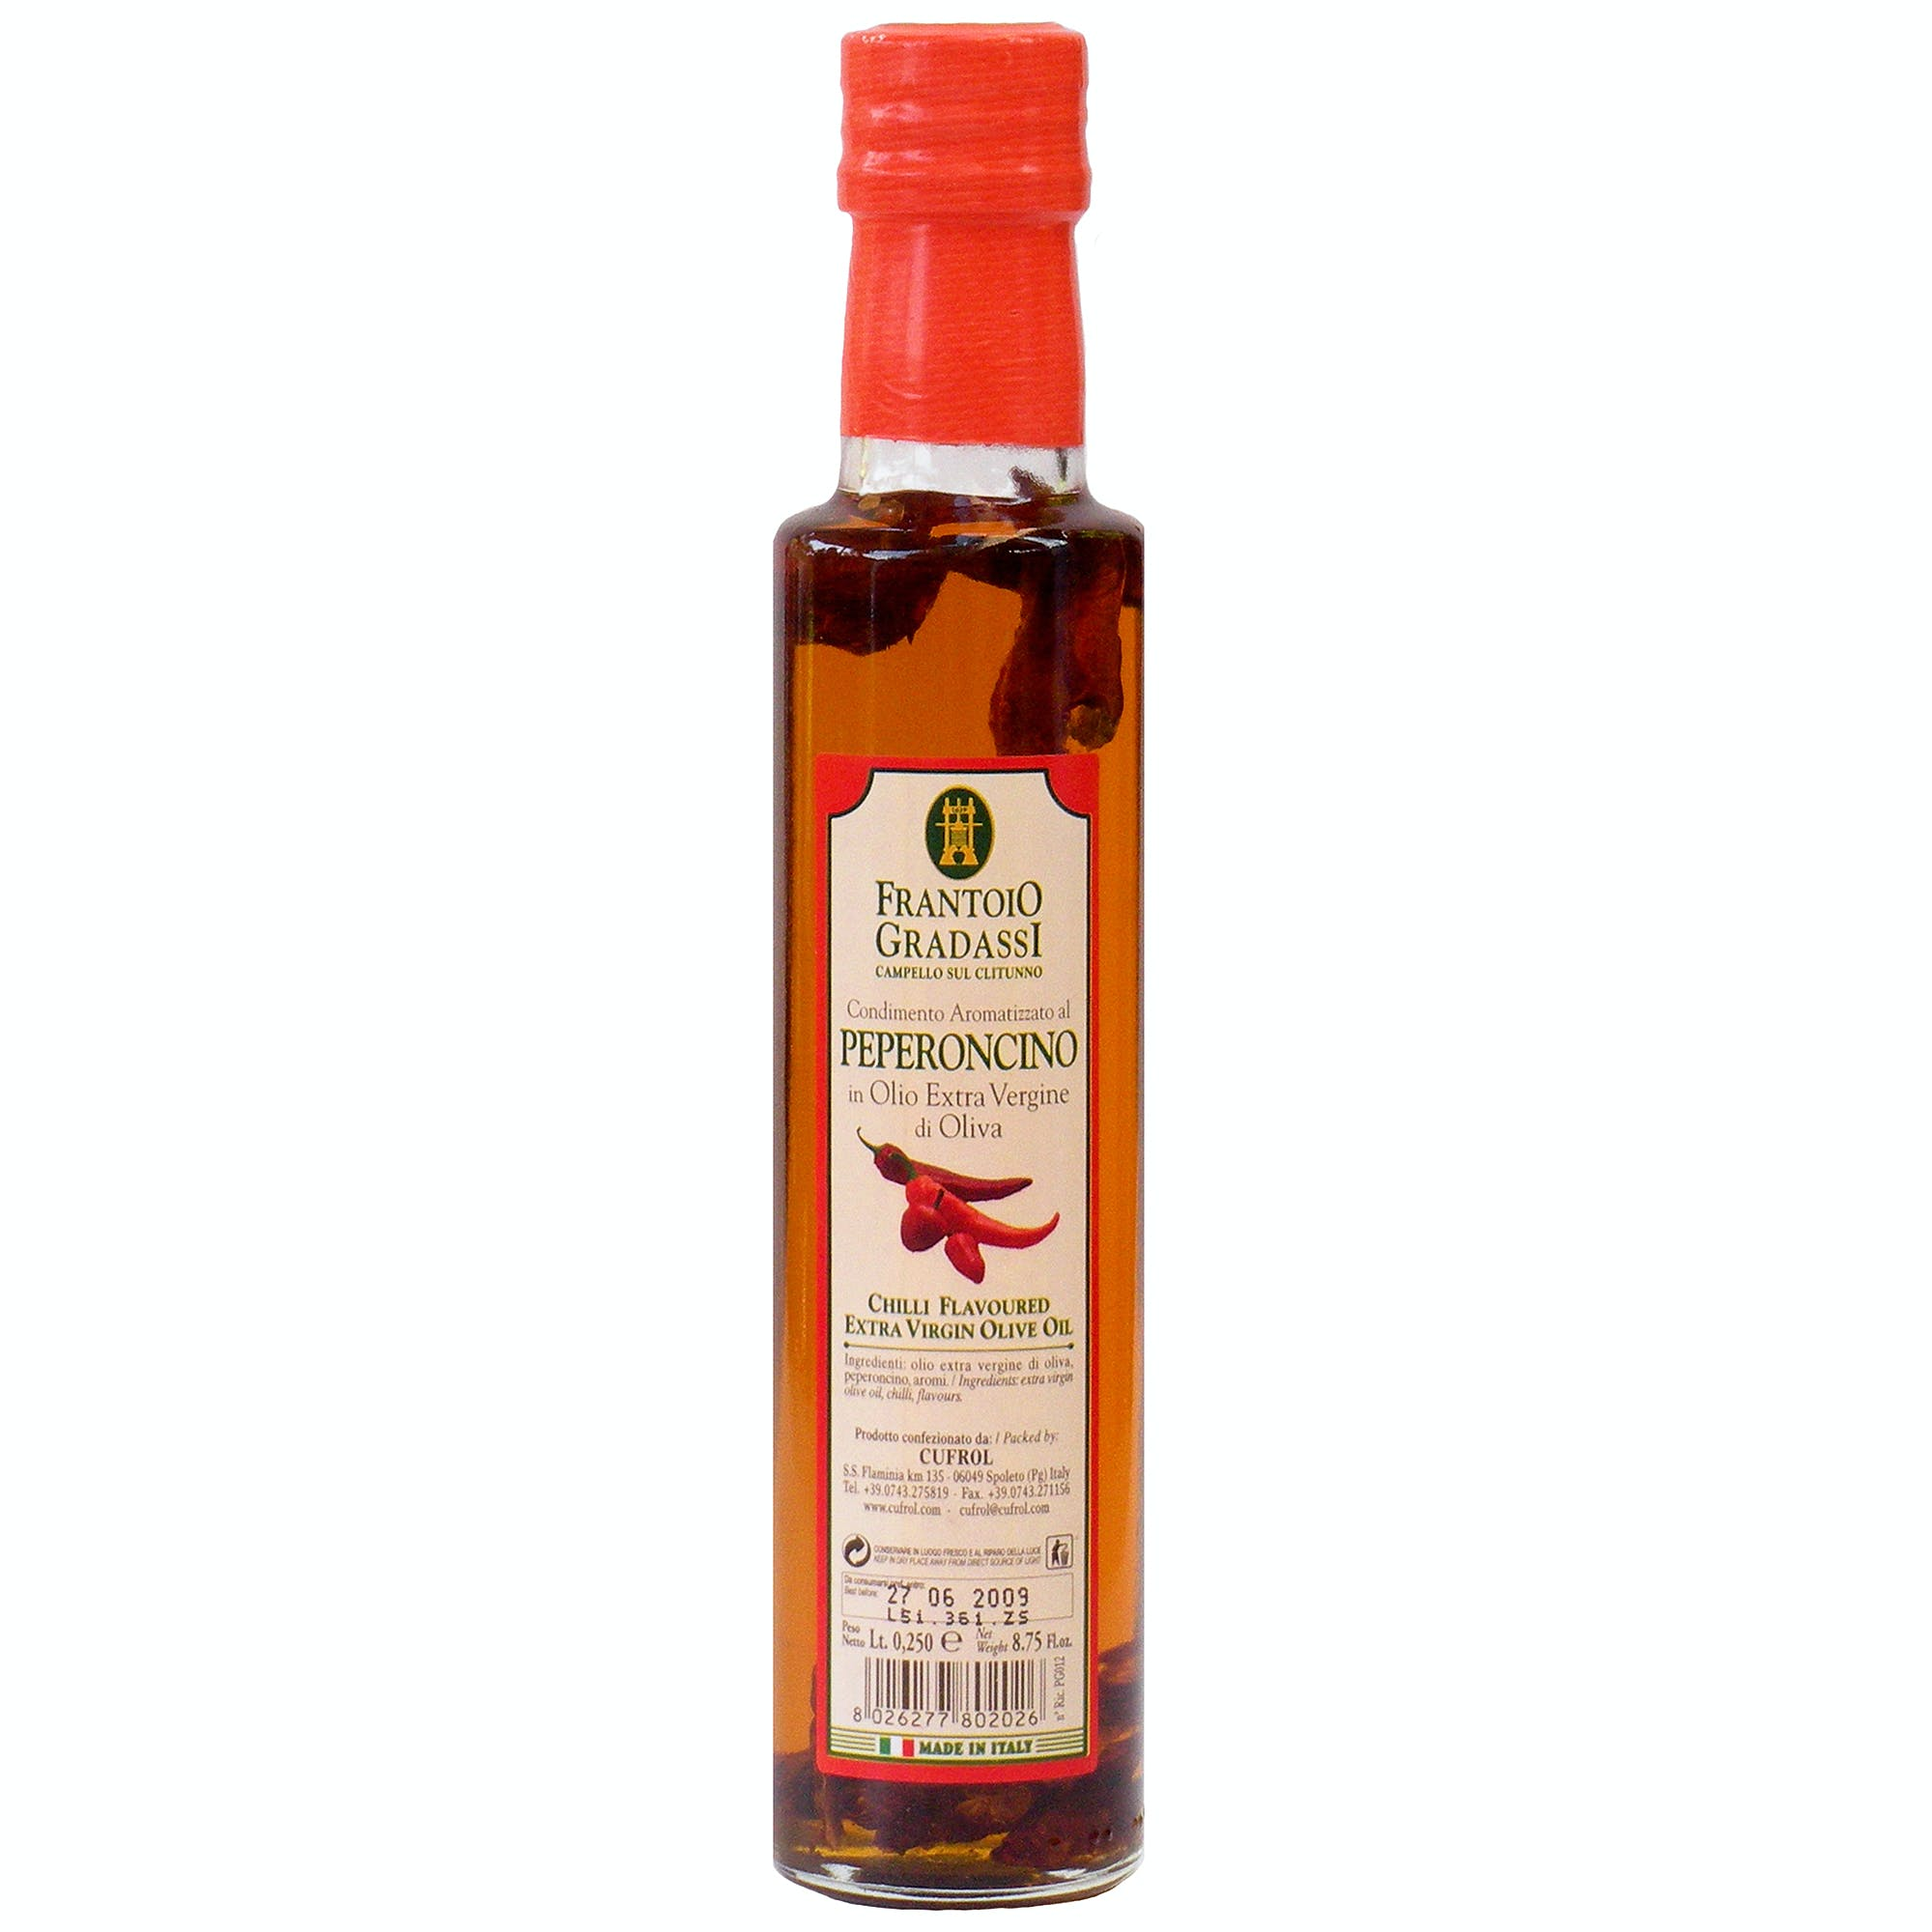 Italian Natural Pepper Infused Extra Virgin Olive Oil Dressing From Cufrol, 8.5 Ounces Infused oil sold by M5 Corporation